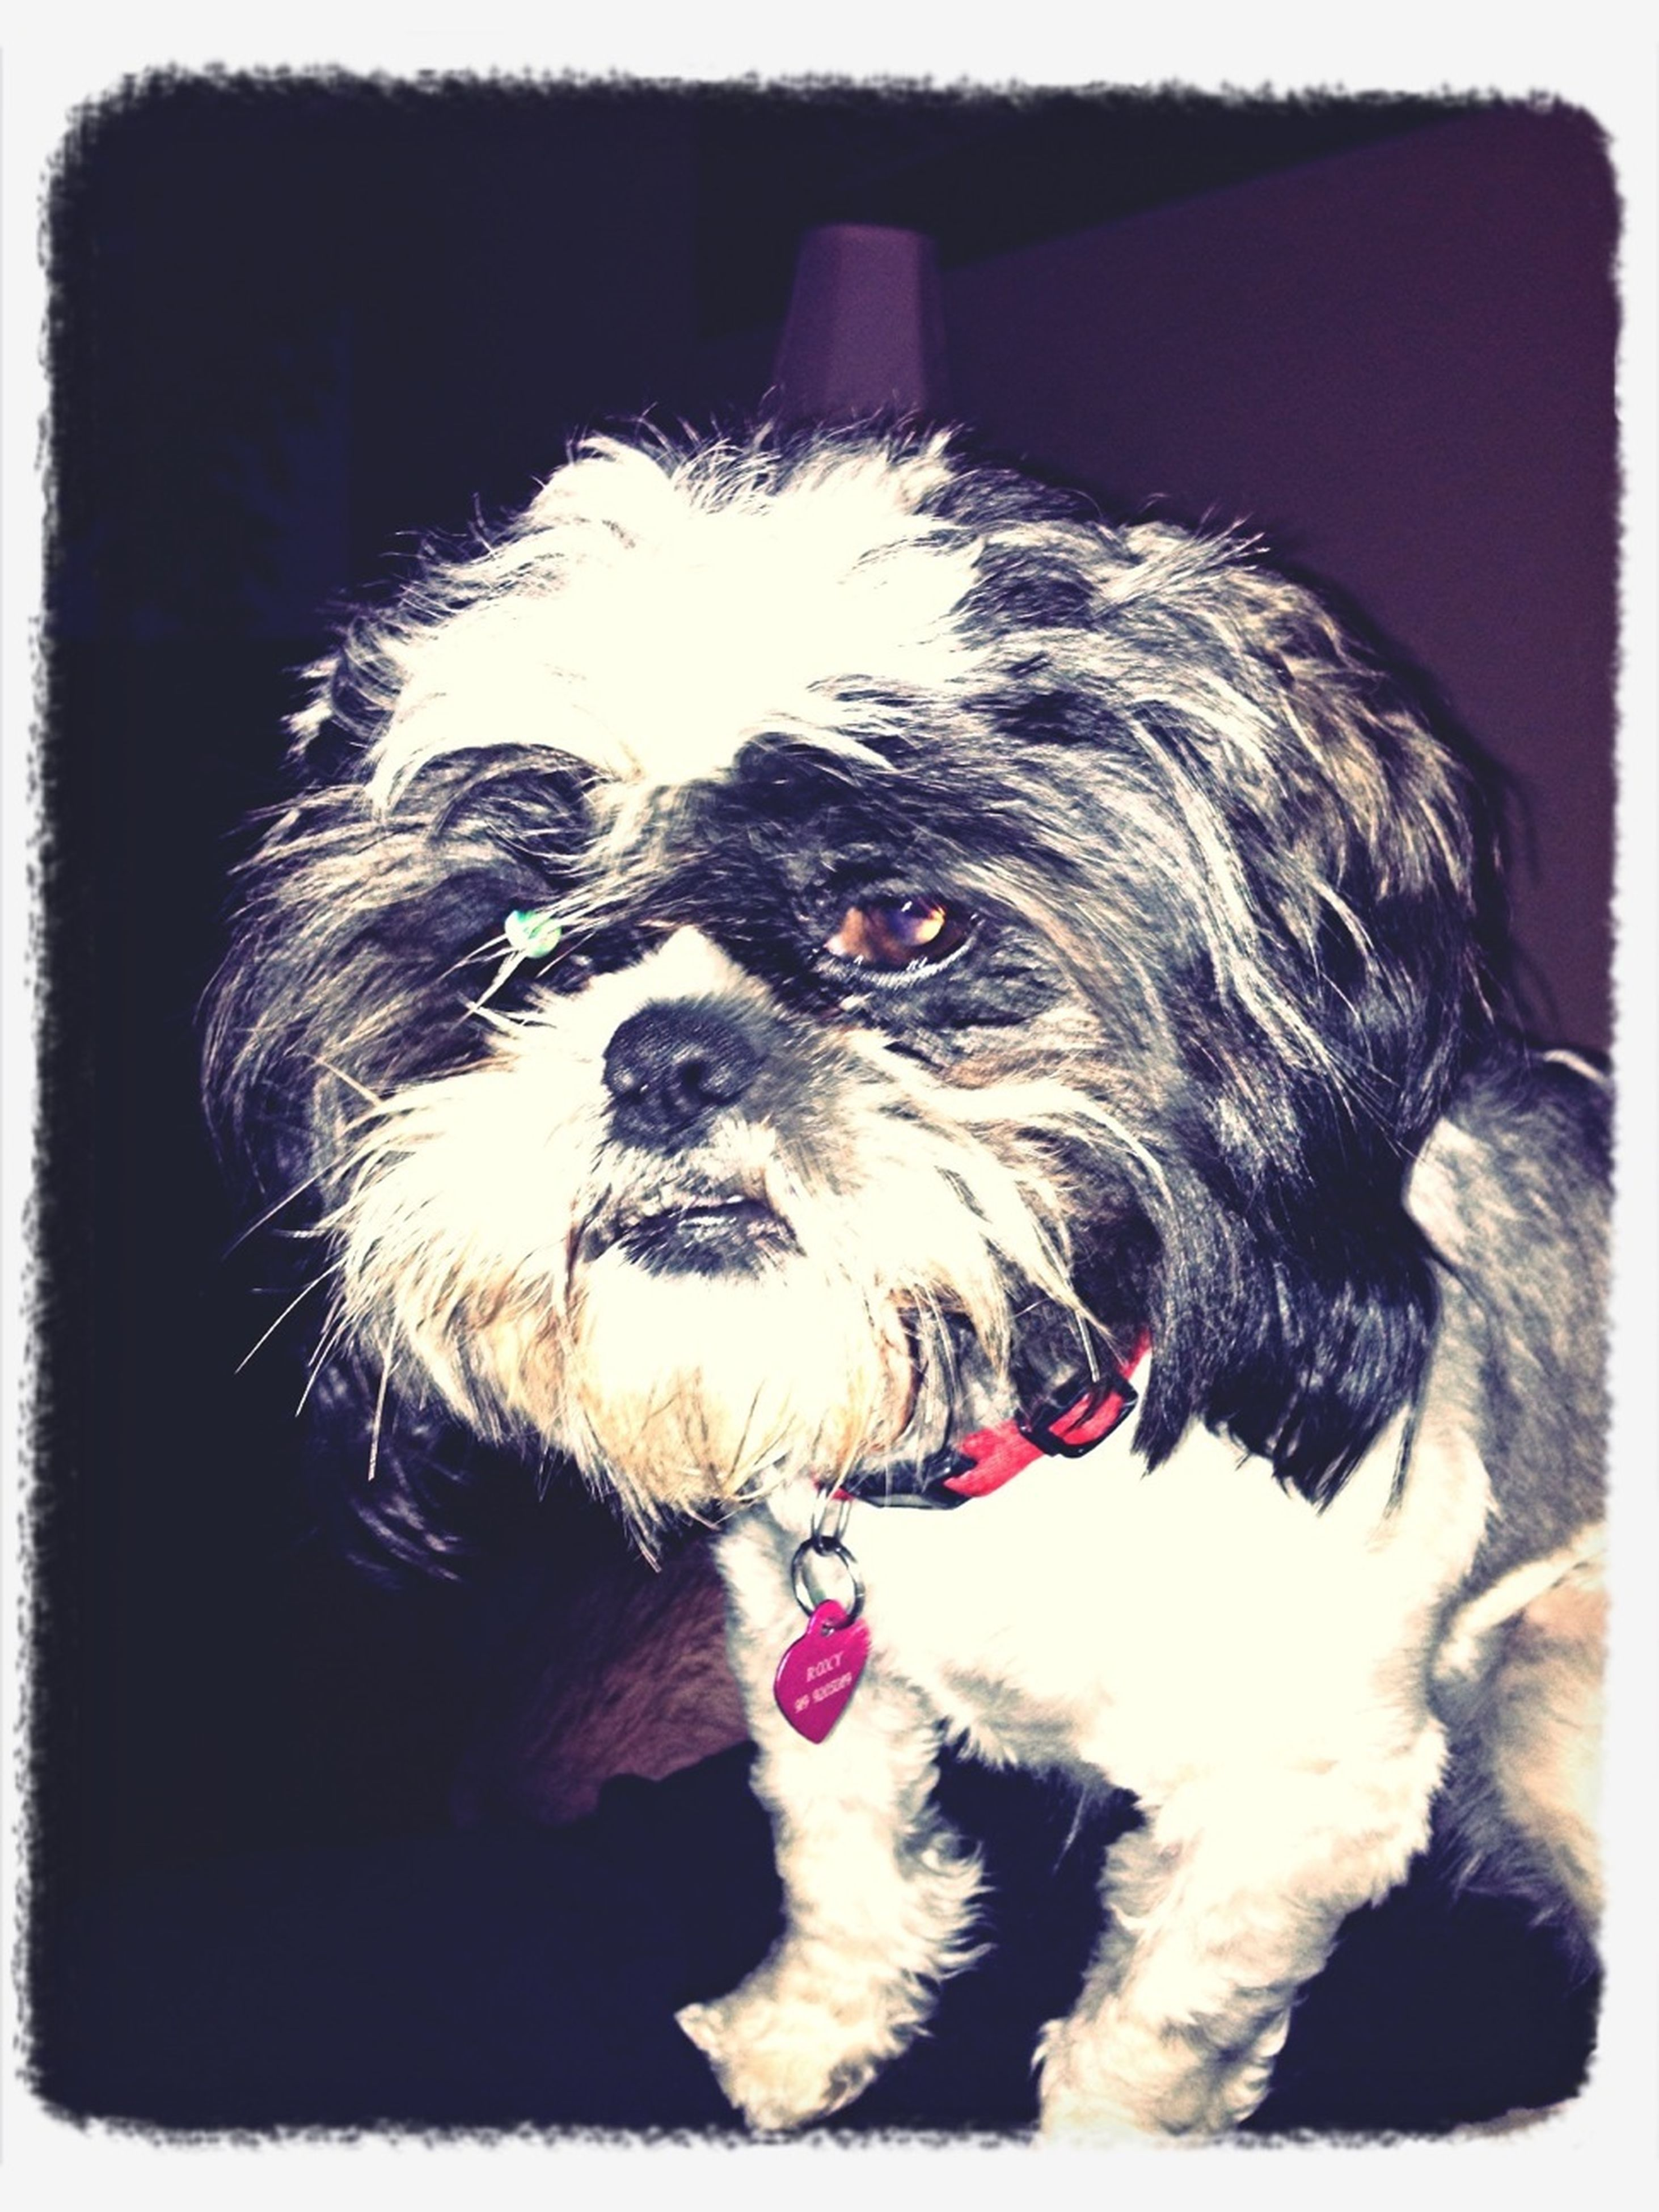 pets, dog, domestic animals, transfer print, one animal, animal themes, auto post production filter, mammal, looking at camera, portrait, indoors, close-up, animal head, home interior, front view, black color, no people, sticking out tongue, mouth open